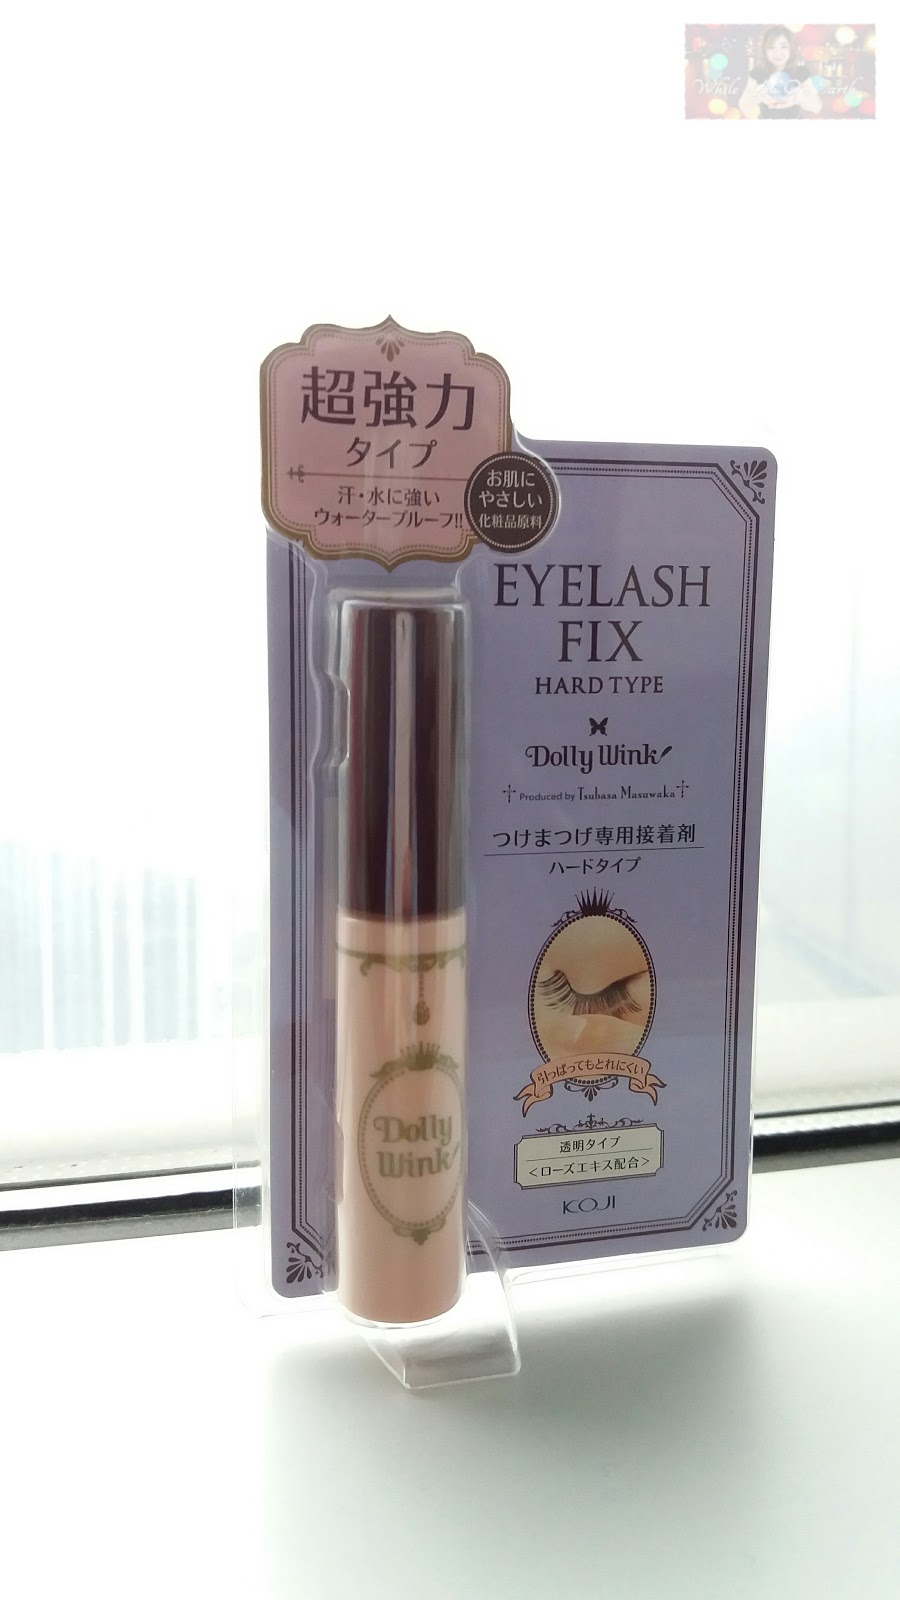 1ebf924c1c7 The product comes in this simple small tube like other eyelash glue, and  the decor is a typical like Dolly Wink, so girly and super sweet.